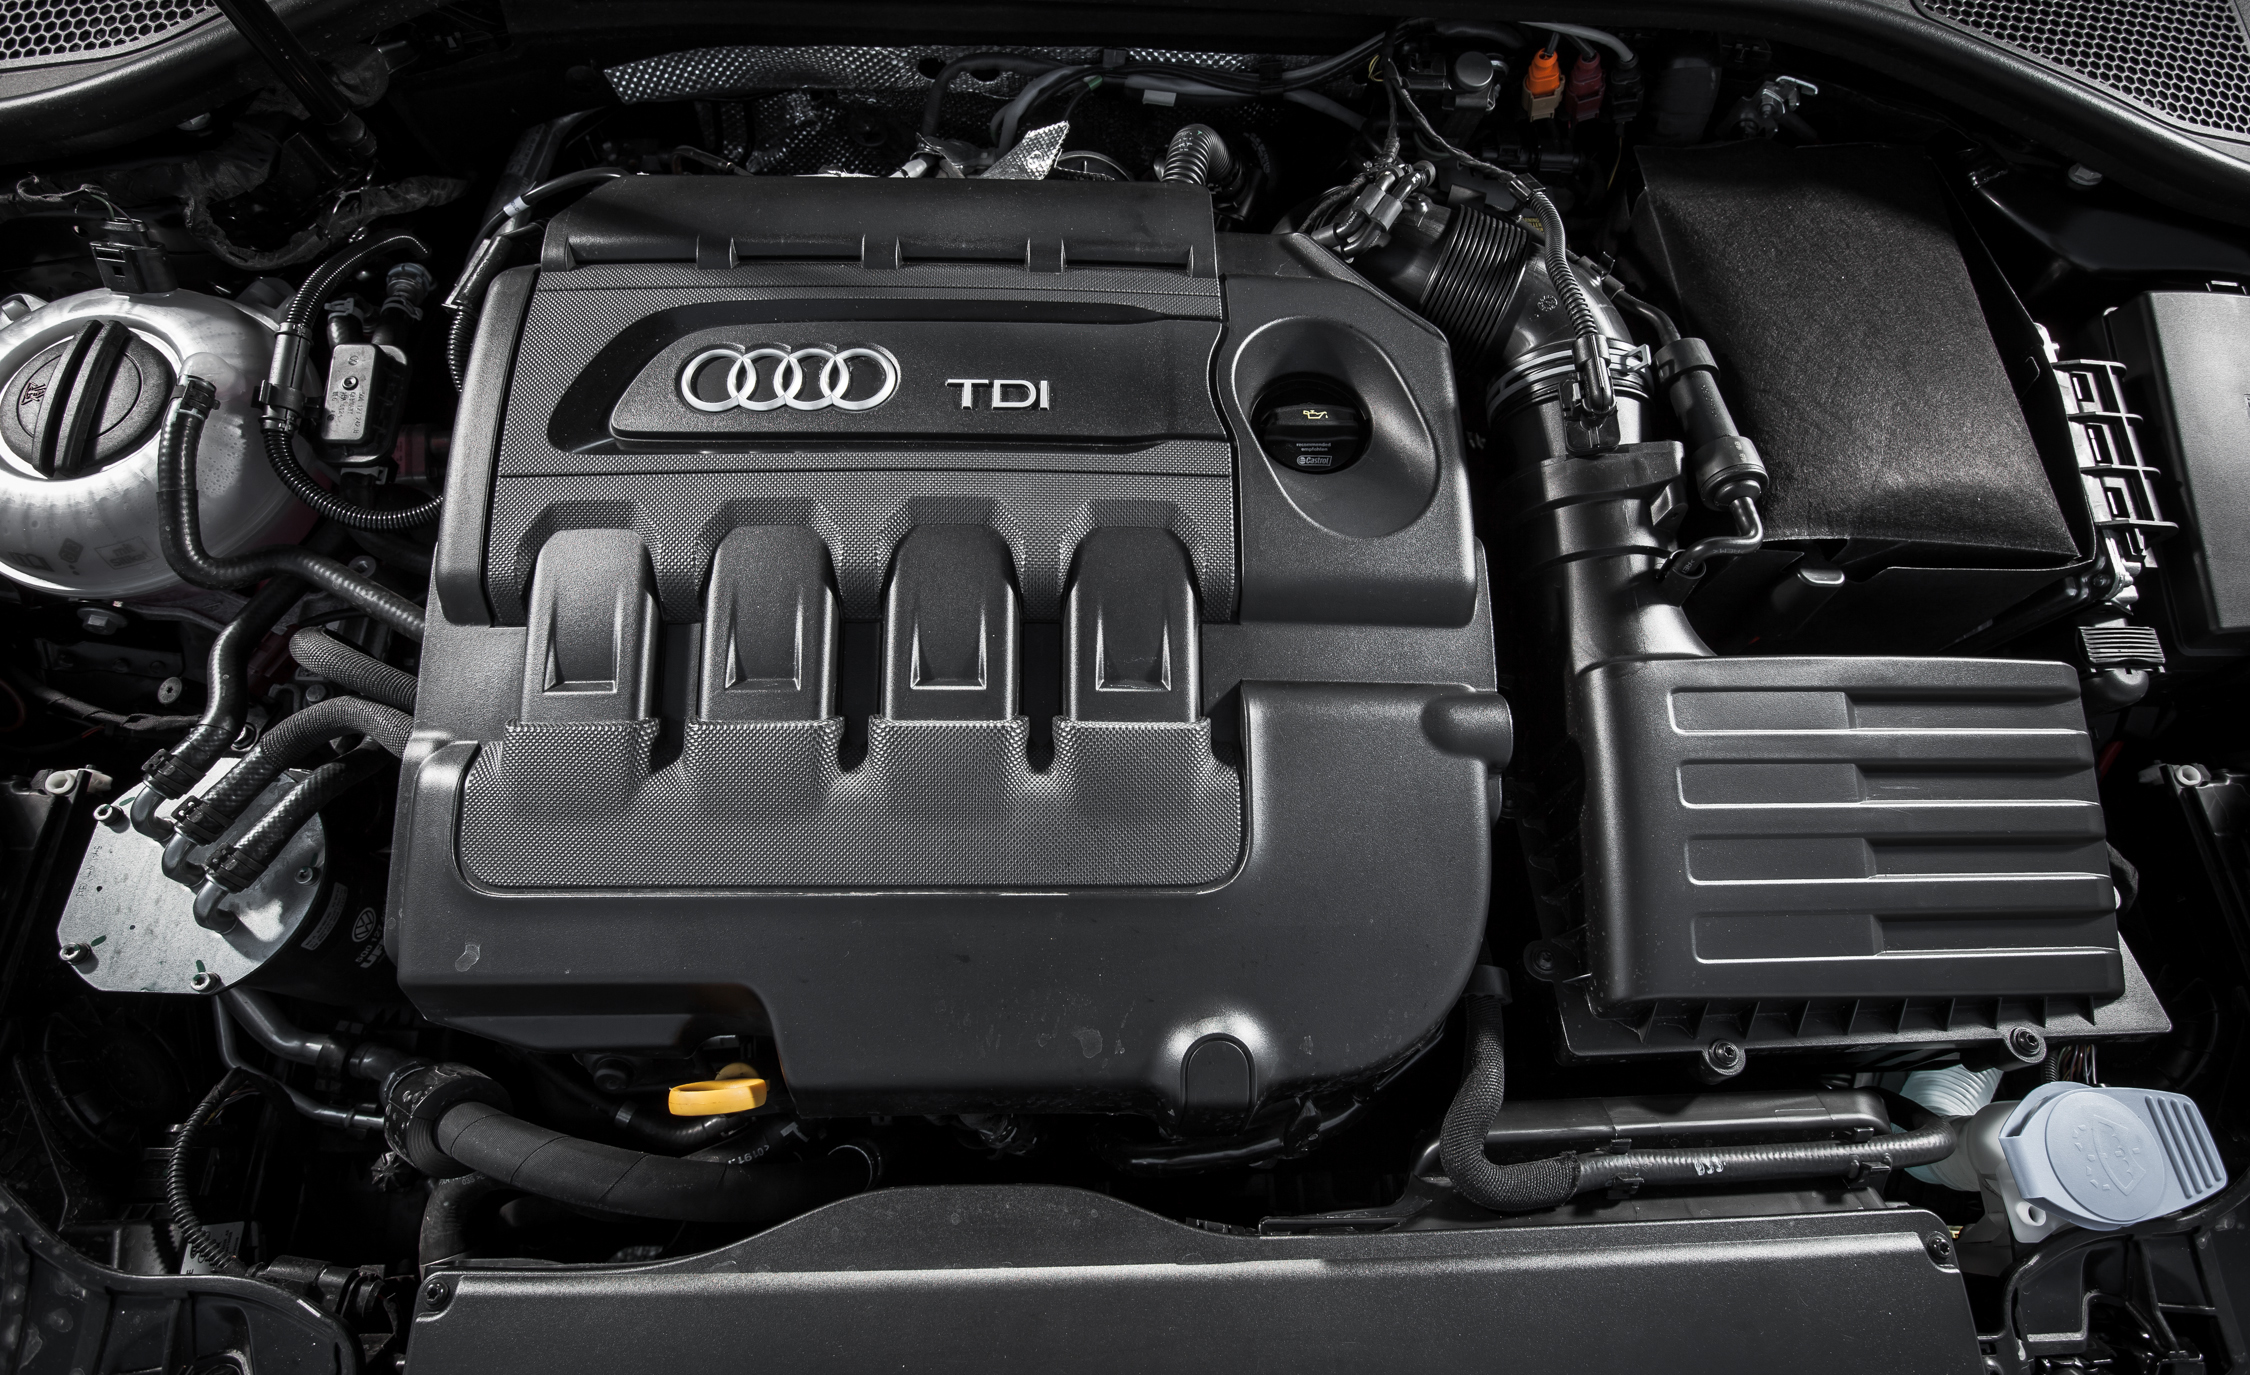 2015 Audi A3 TDI View Engine (Photo 50 of 50)